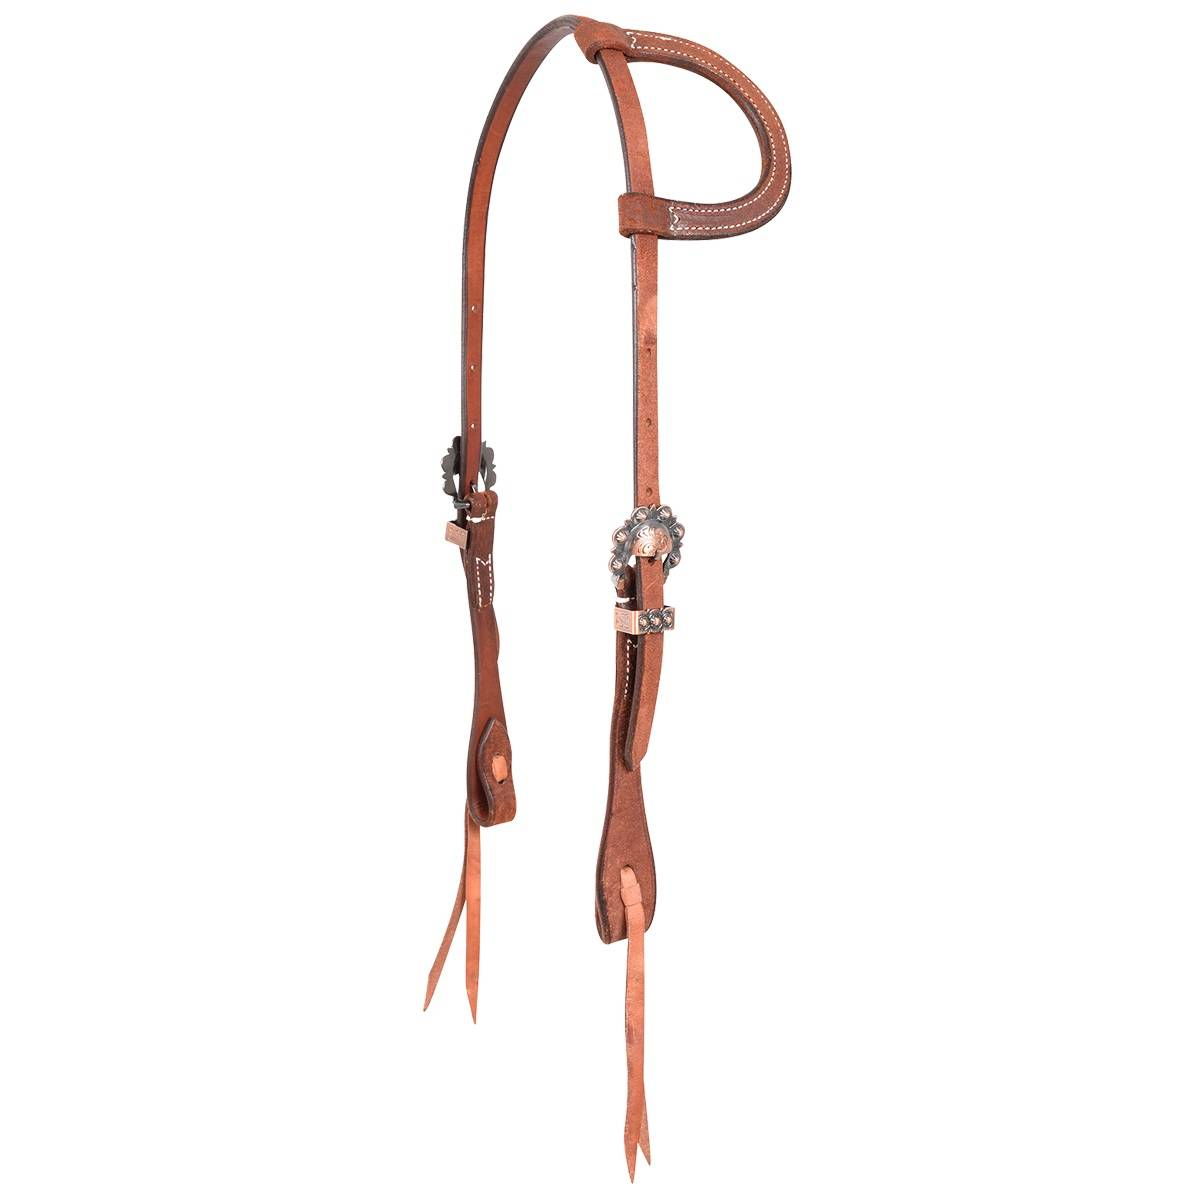 Martin Cowboy Antique Copper Split Ear Headstall- Roughout